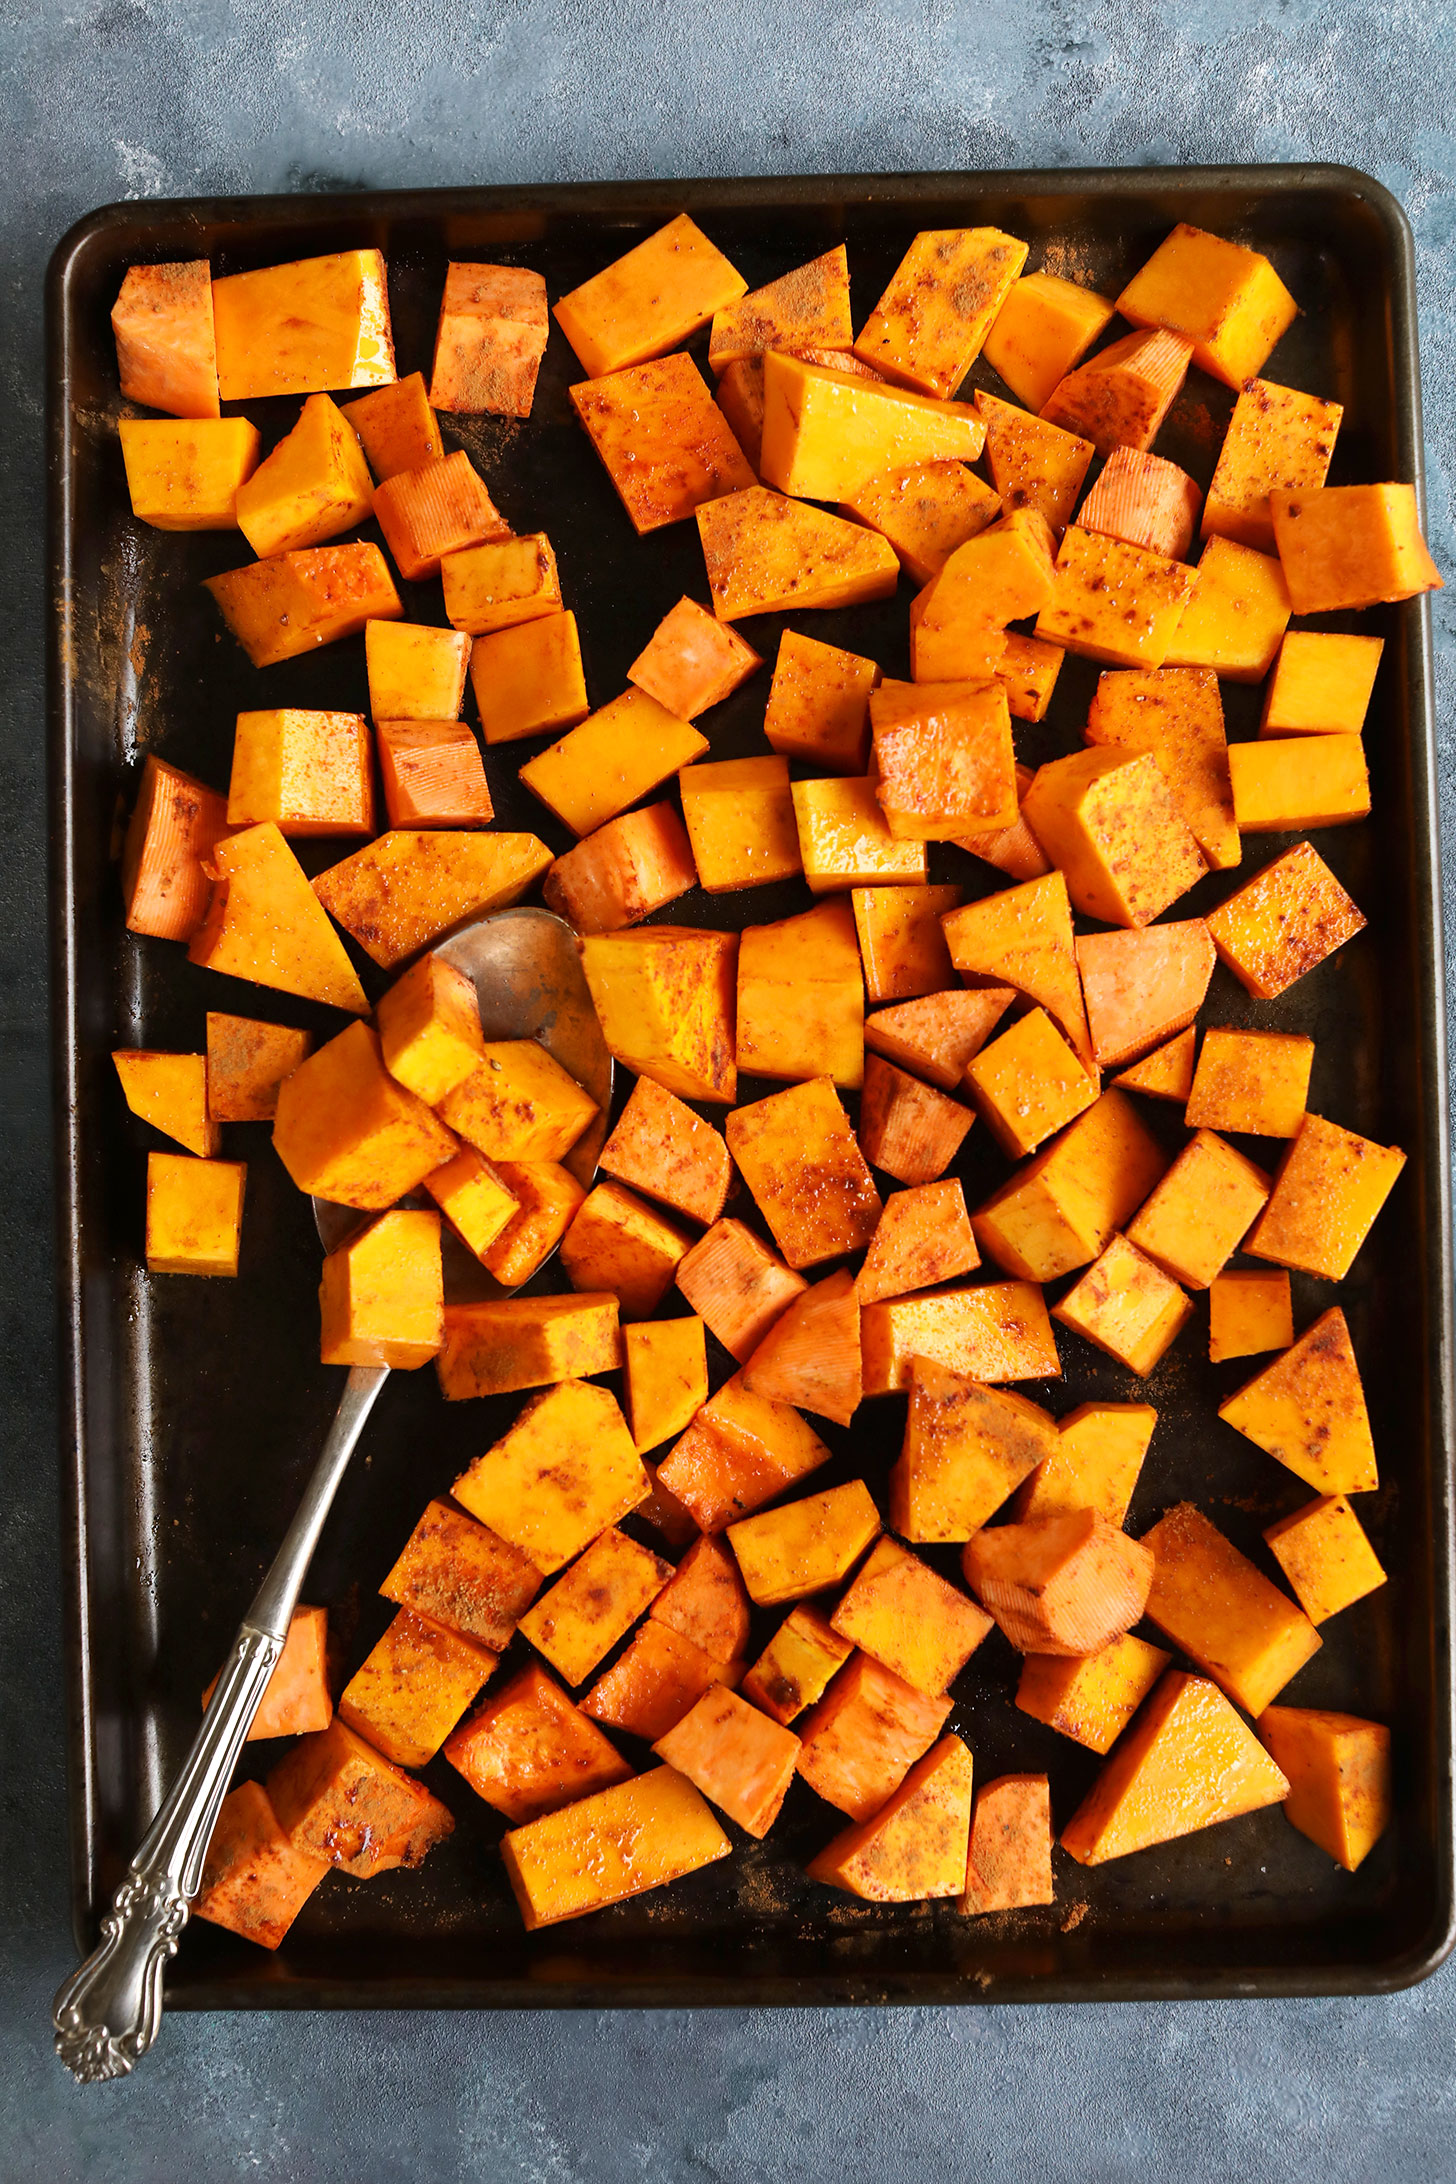 Baking sheet with cubed butternut squash for making a gluten-free vegan thanksgiving salad recipe